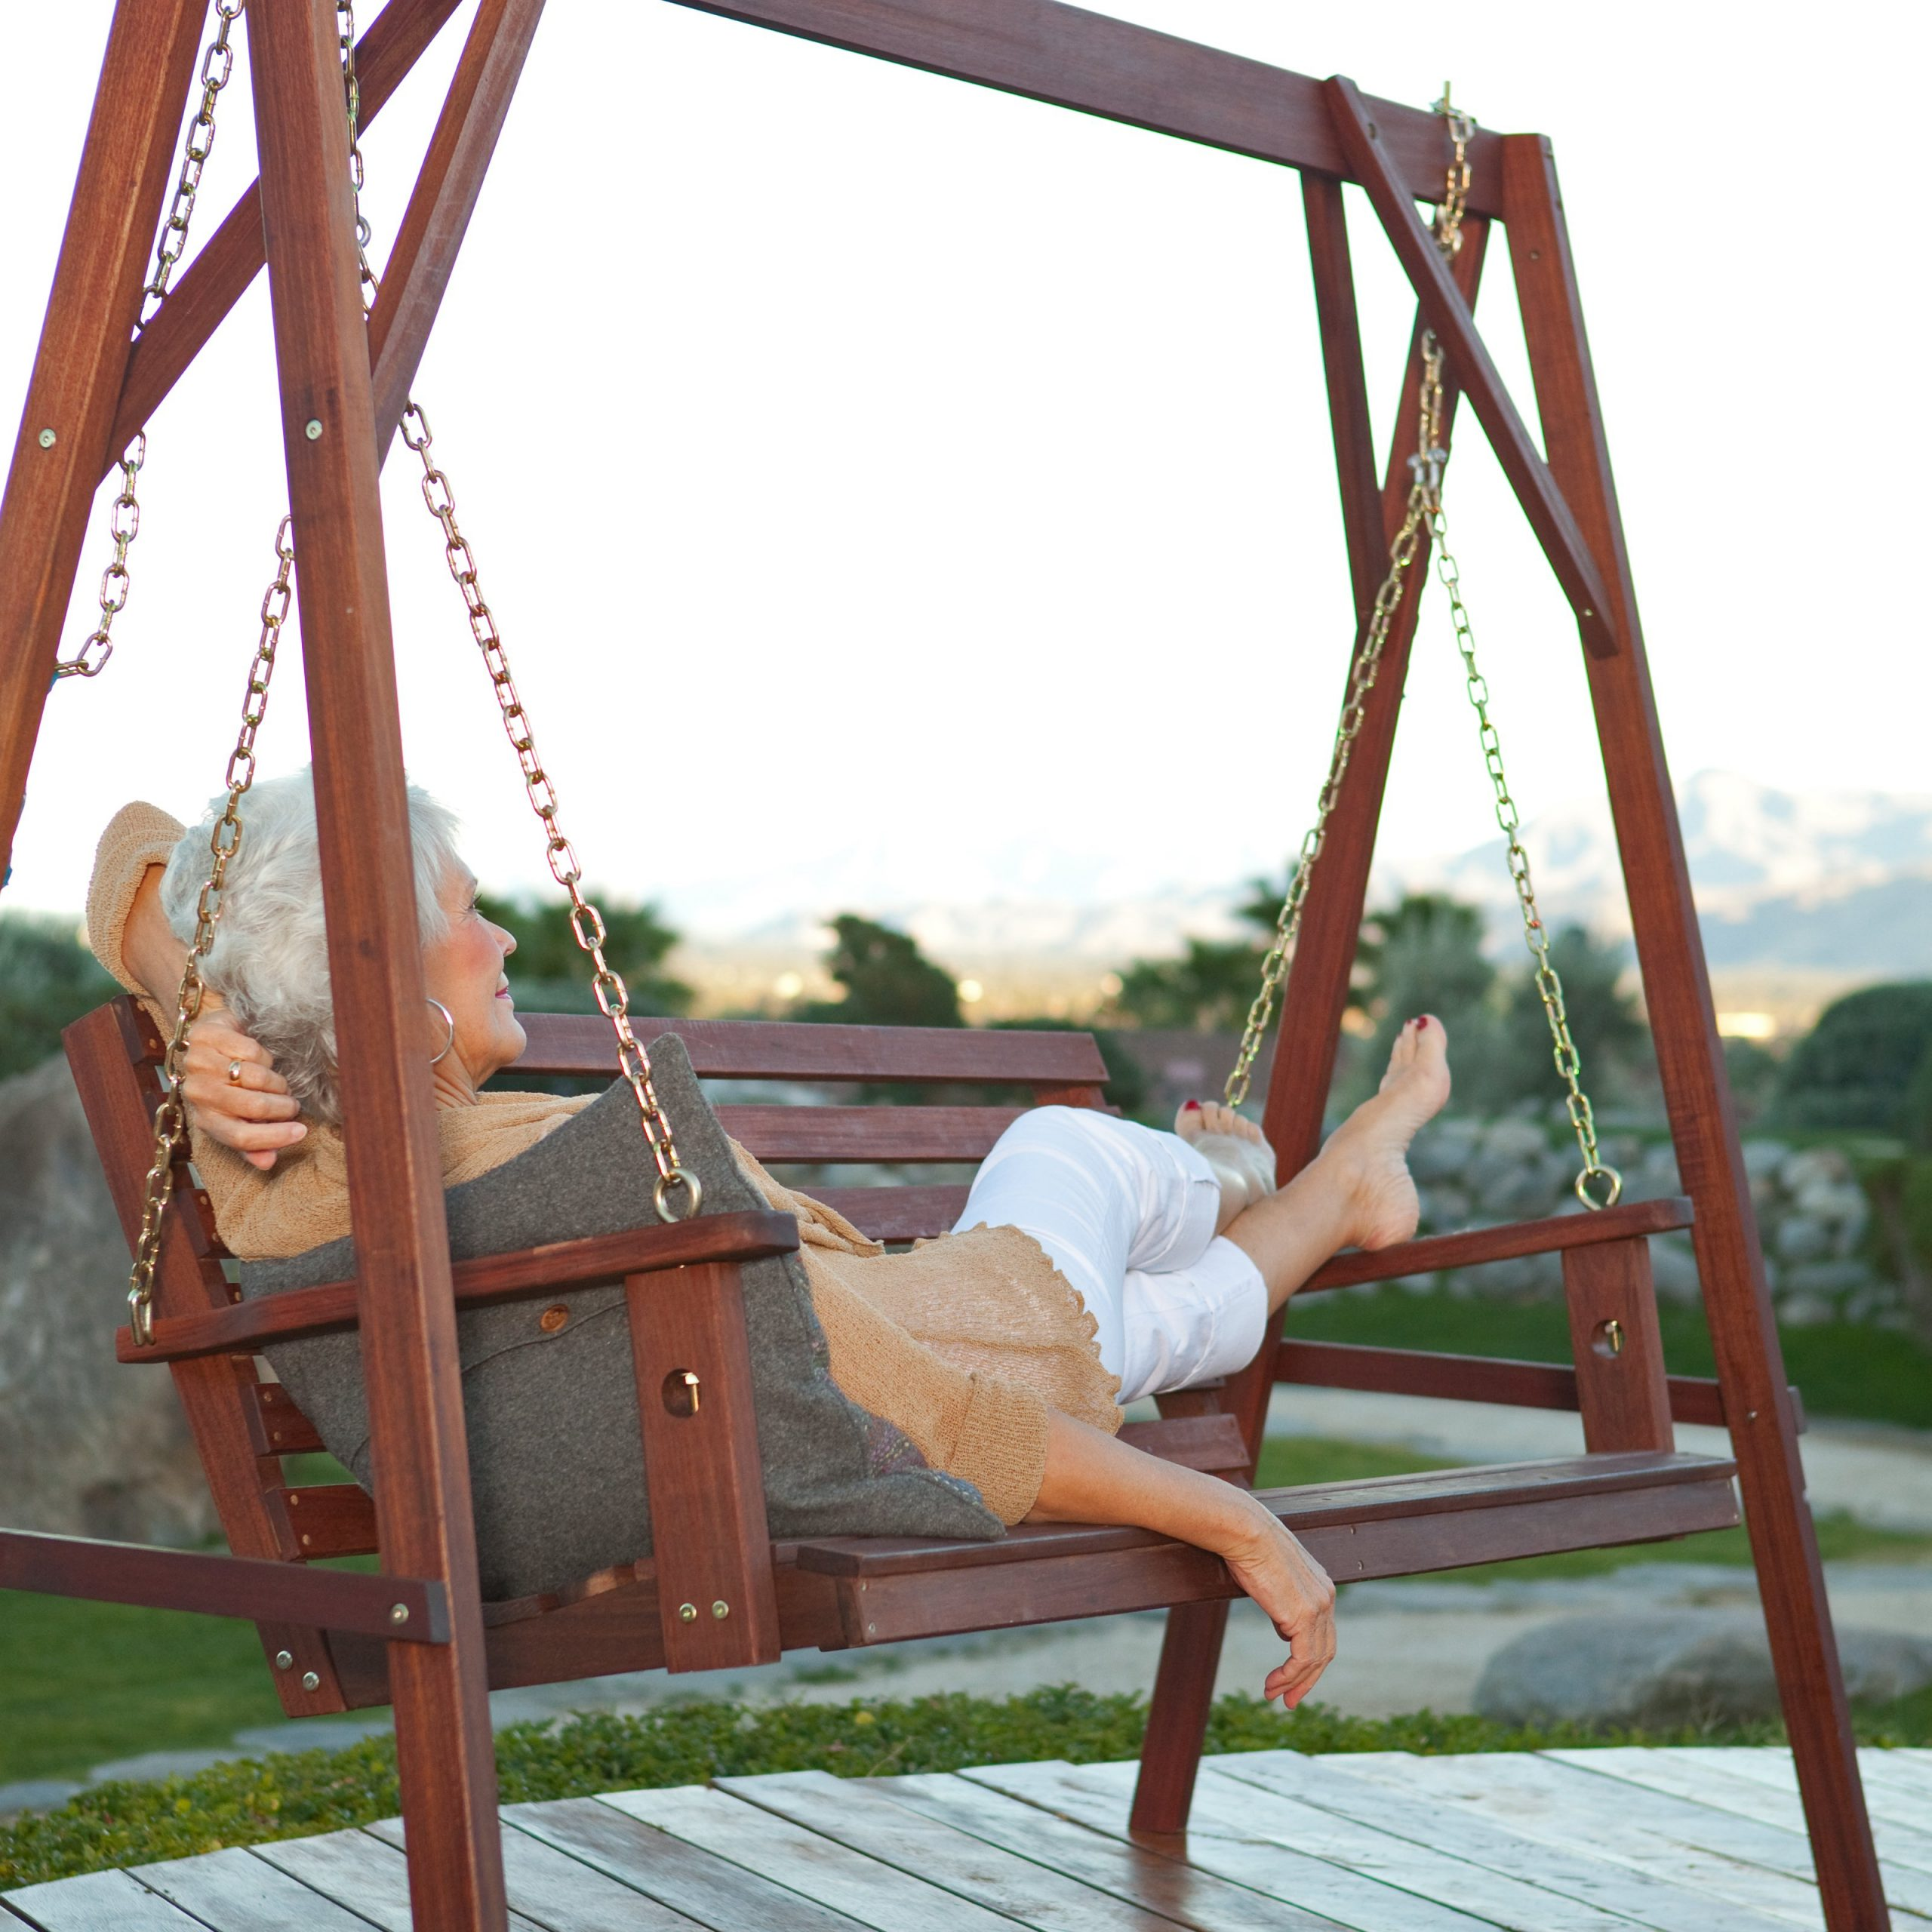 Belham Living Richmond Straight Back Porch Swing & Stand Regarding Porch Swings With Stand (View 15 of 25)